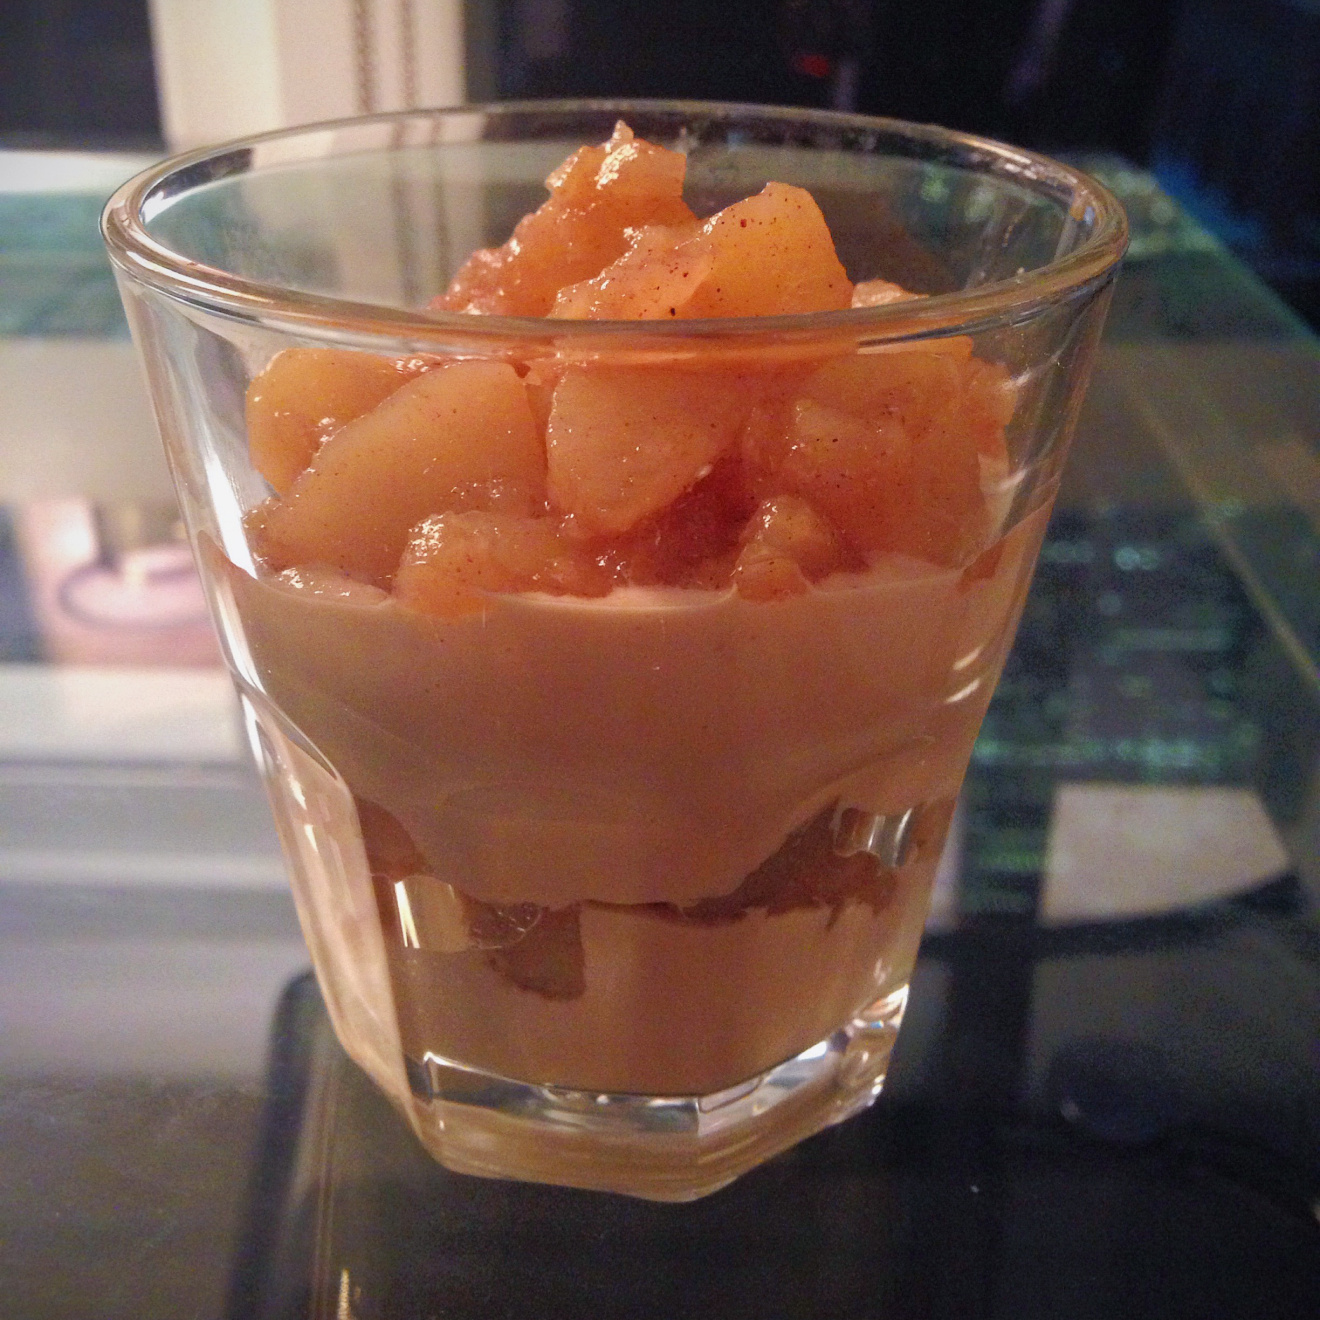 Dessert is tricky because it is rather difficult to come up with a sweet and satisfying treat while minimizing the use of sugar, creams and fats. I finally came up with a gluten and dairy free option that utilized the natural sweetness of fresh fruit. I also experimented by trying to make a vegan alternative cream using raw cashews that I soaked and then blended in a food processor with vanilla extract,vanilla almond milk, and a little bit of coconut sugar. It turned out very well! I really liked the dessert because it wasn't overly sweet and the cashew cream had the added benefit of that great nutty flavor. It was very simple to prepare and it looked nice piled neatly into see-through glasses. This would be good for parties because it can be prepared in advance and set aside to chill. You could also play around with presentation and serve the dessert in shooters, or wine glasses.